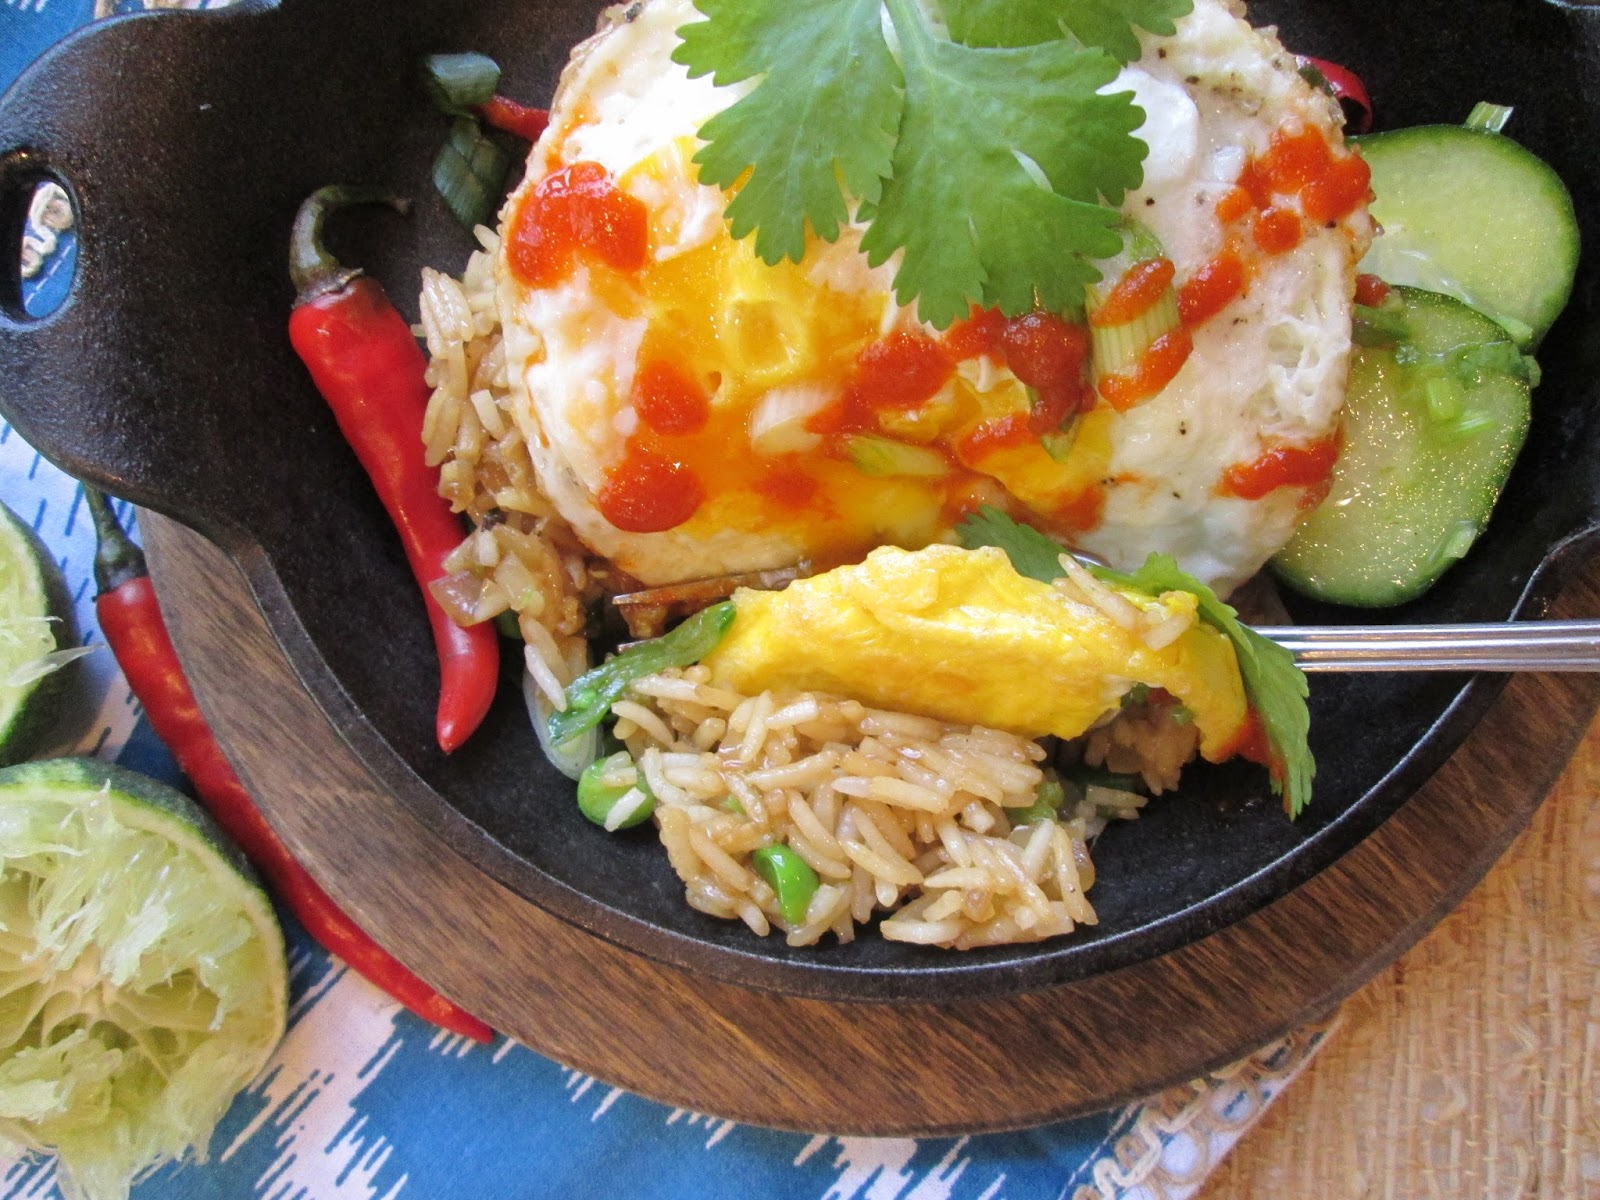 Stirring the pot jamie olivers nasi goreng ihcc monthly featured chef jamie oliver ccuart Choice Image